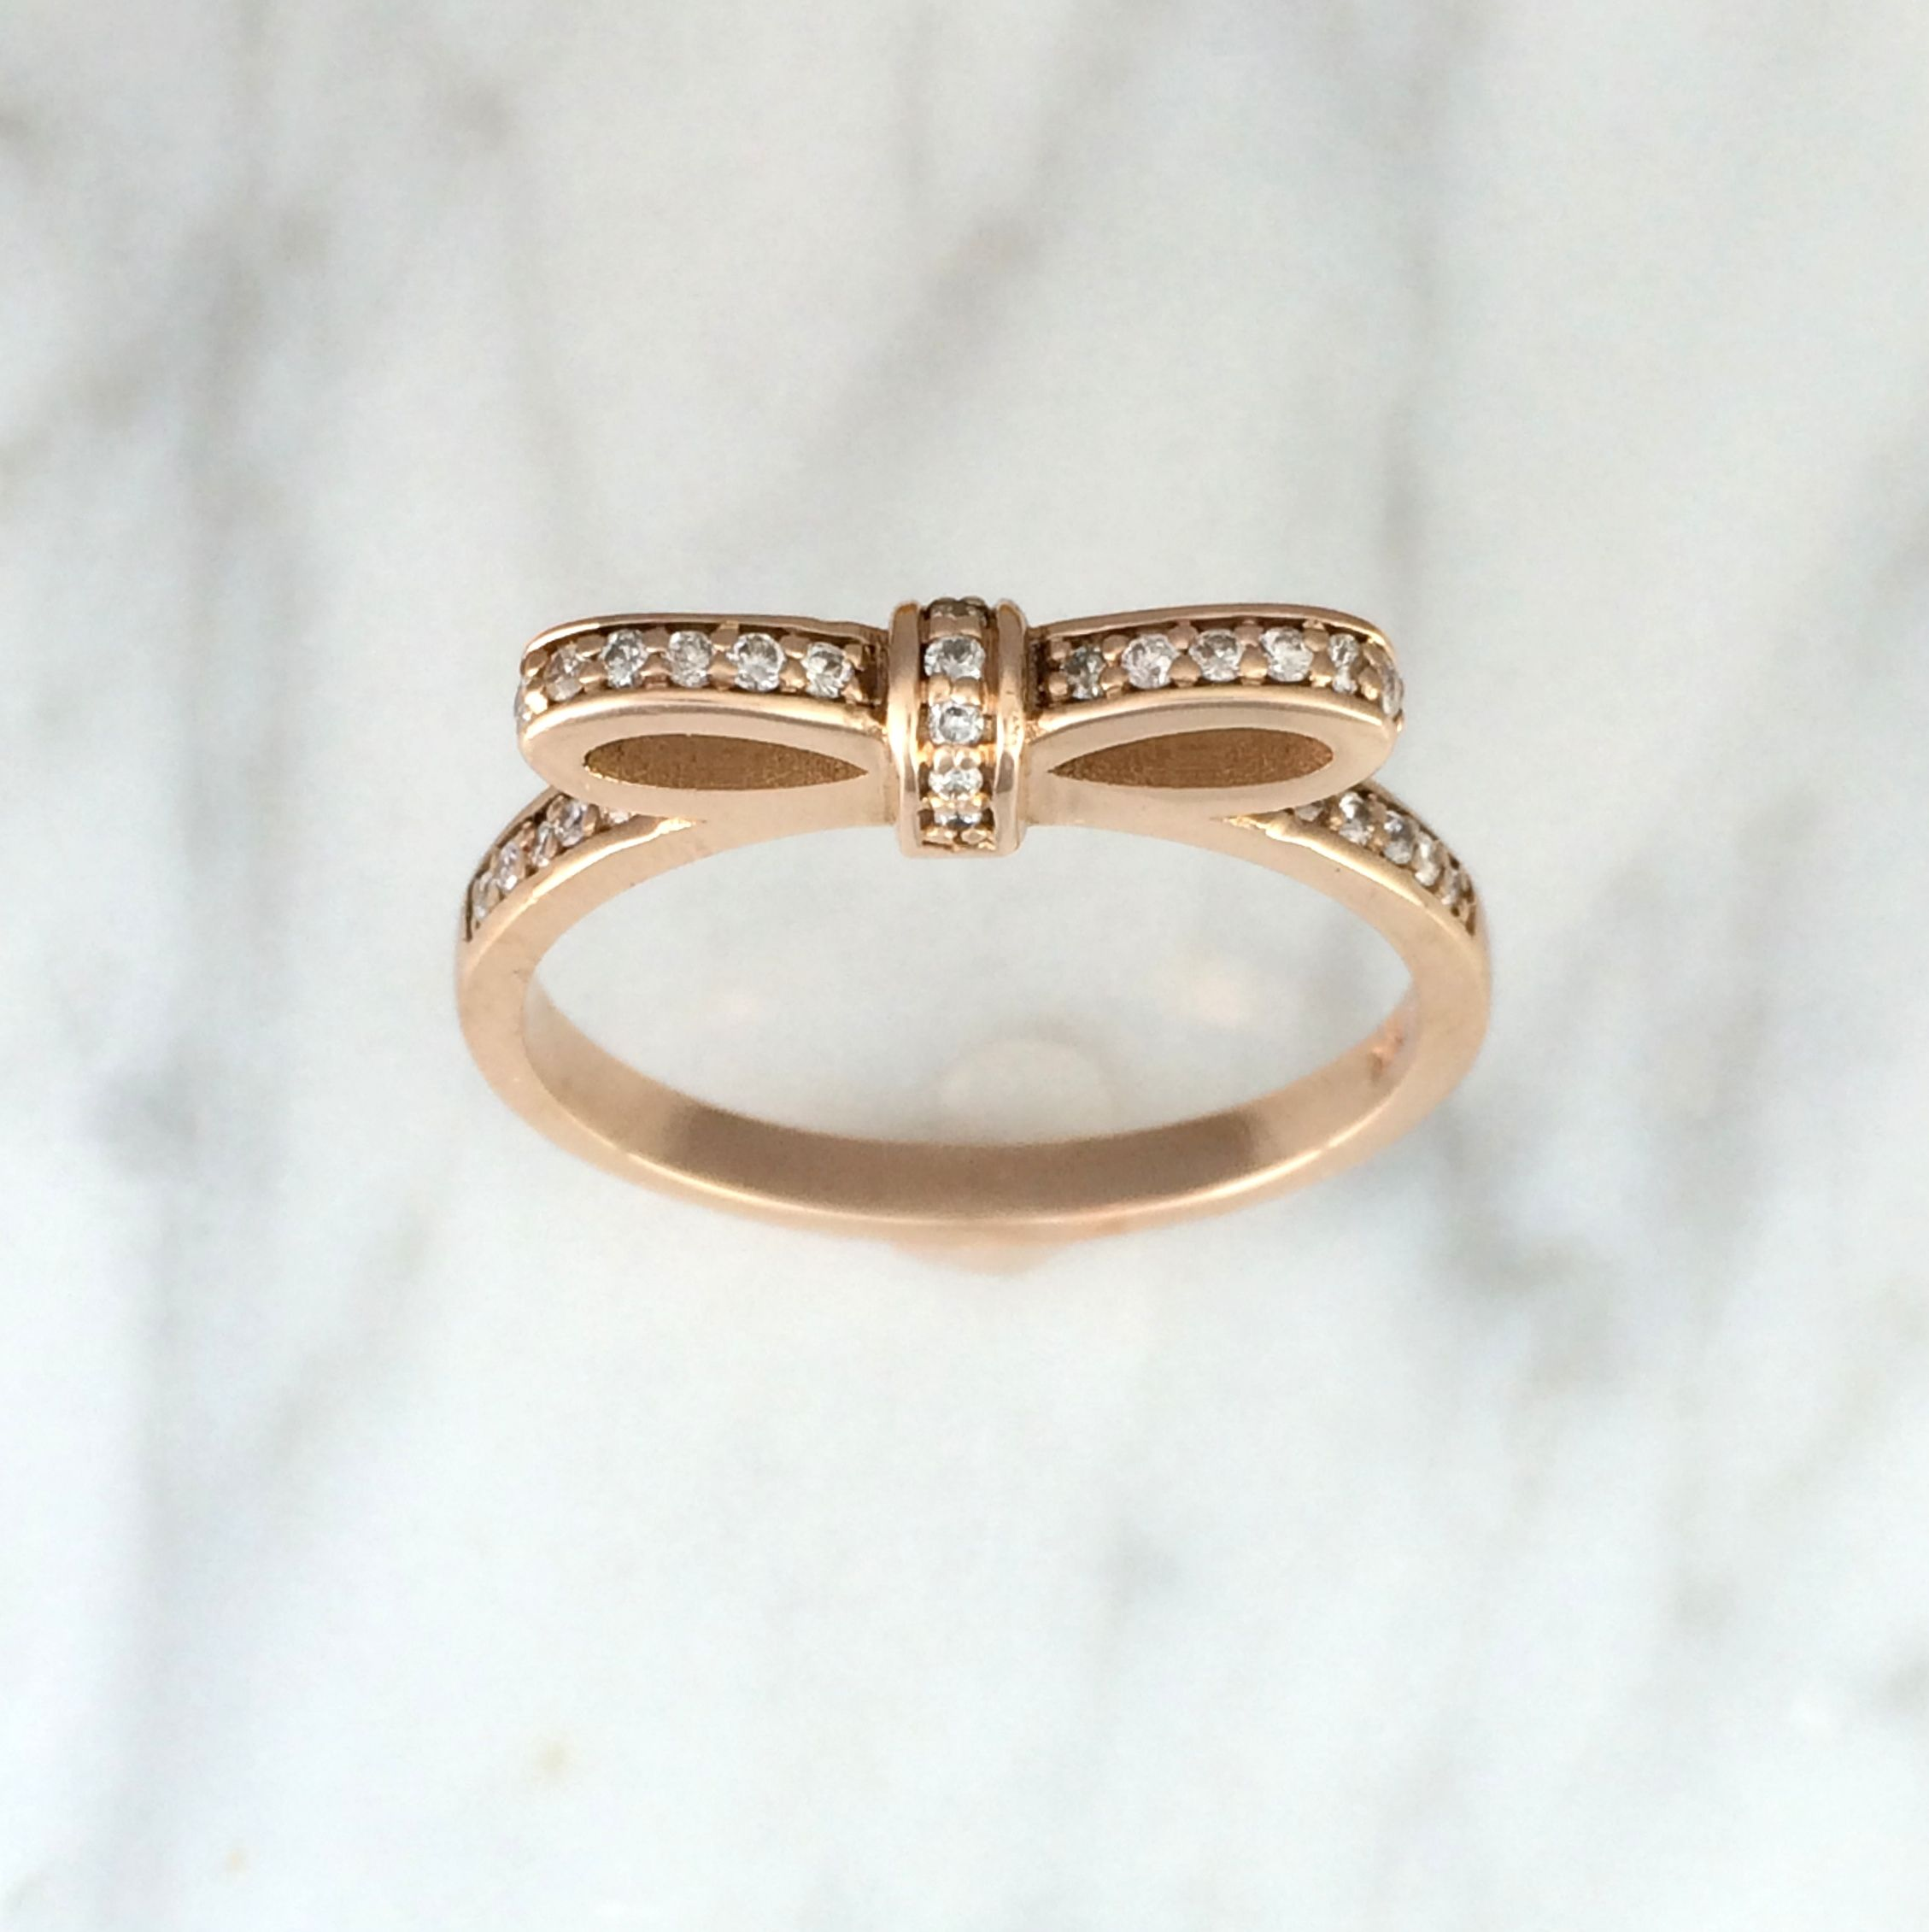 in gold ring h rings wedding vs promise round yellow ifbgjsk g cute trio anniversary trellis diamond